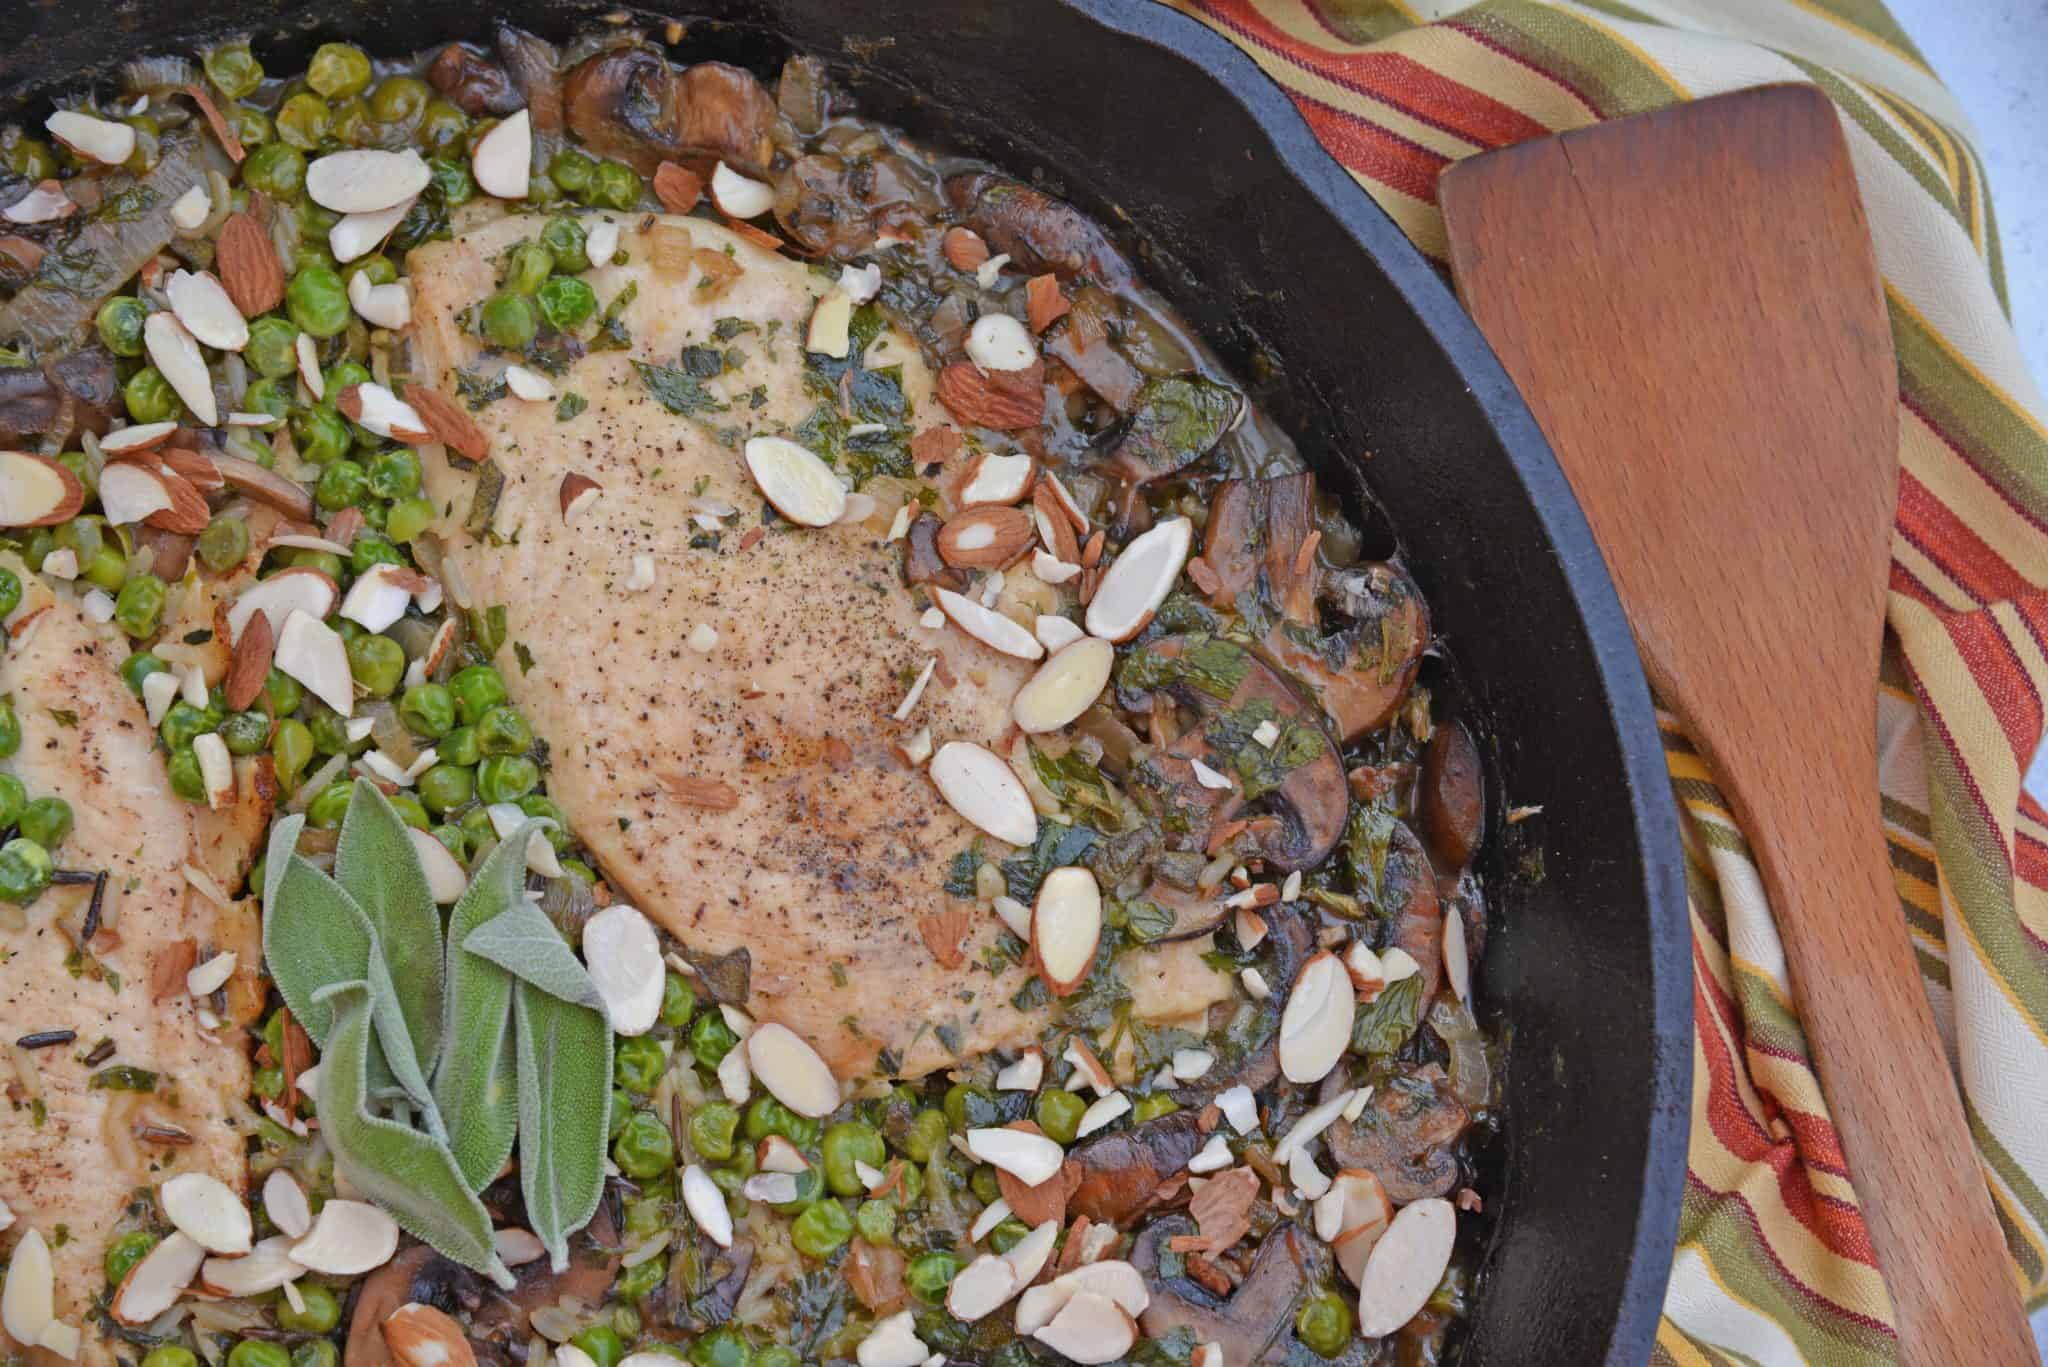 Mushroom Chicken and Rice Skillet is an easy one dish meal with loads of flavor like peas, mushrooms, shallots, sage and garlic.